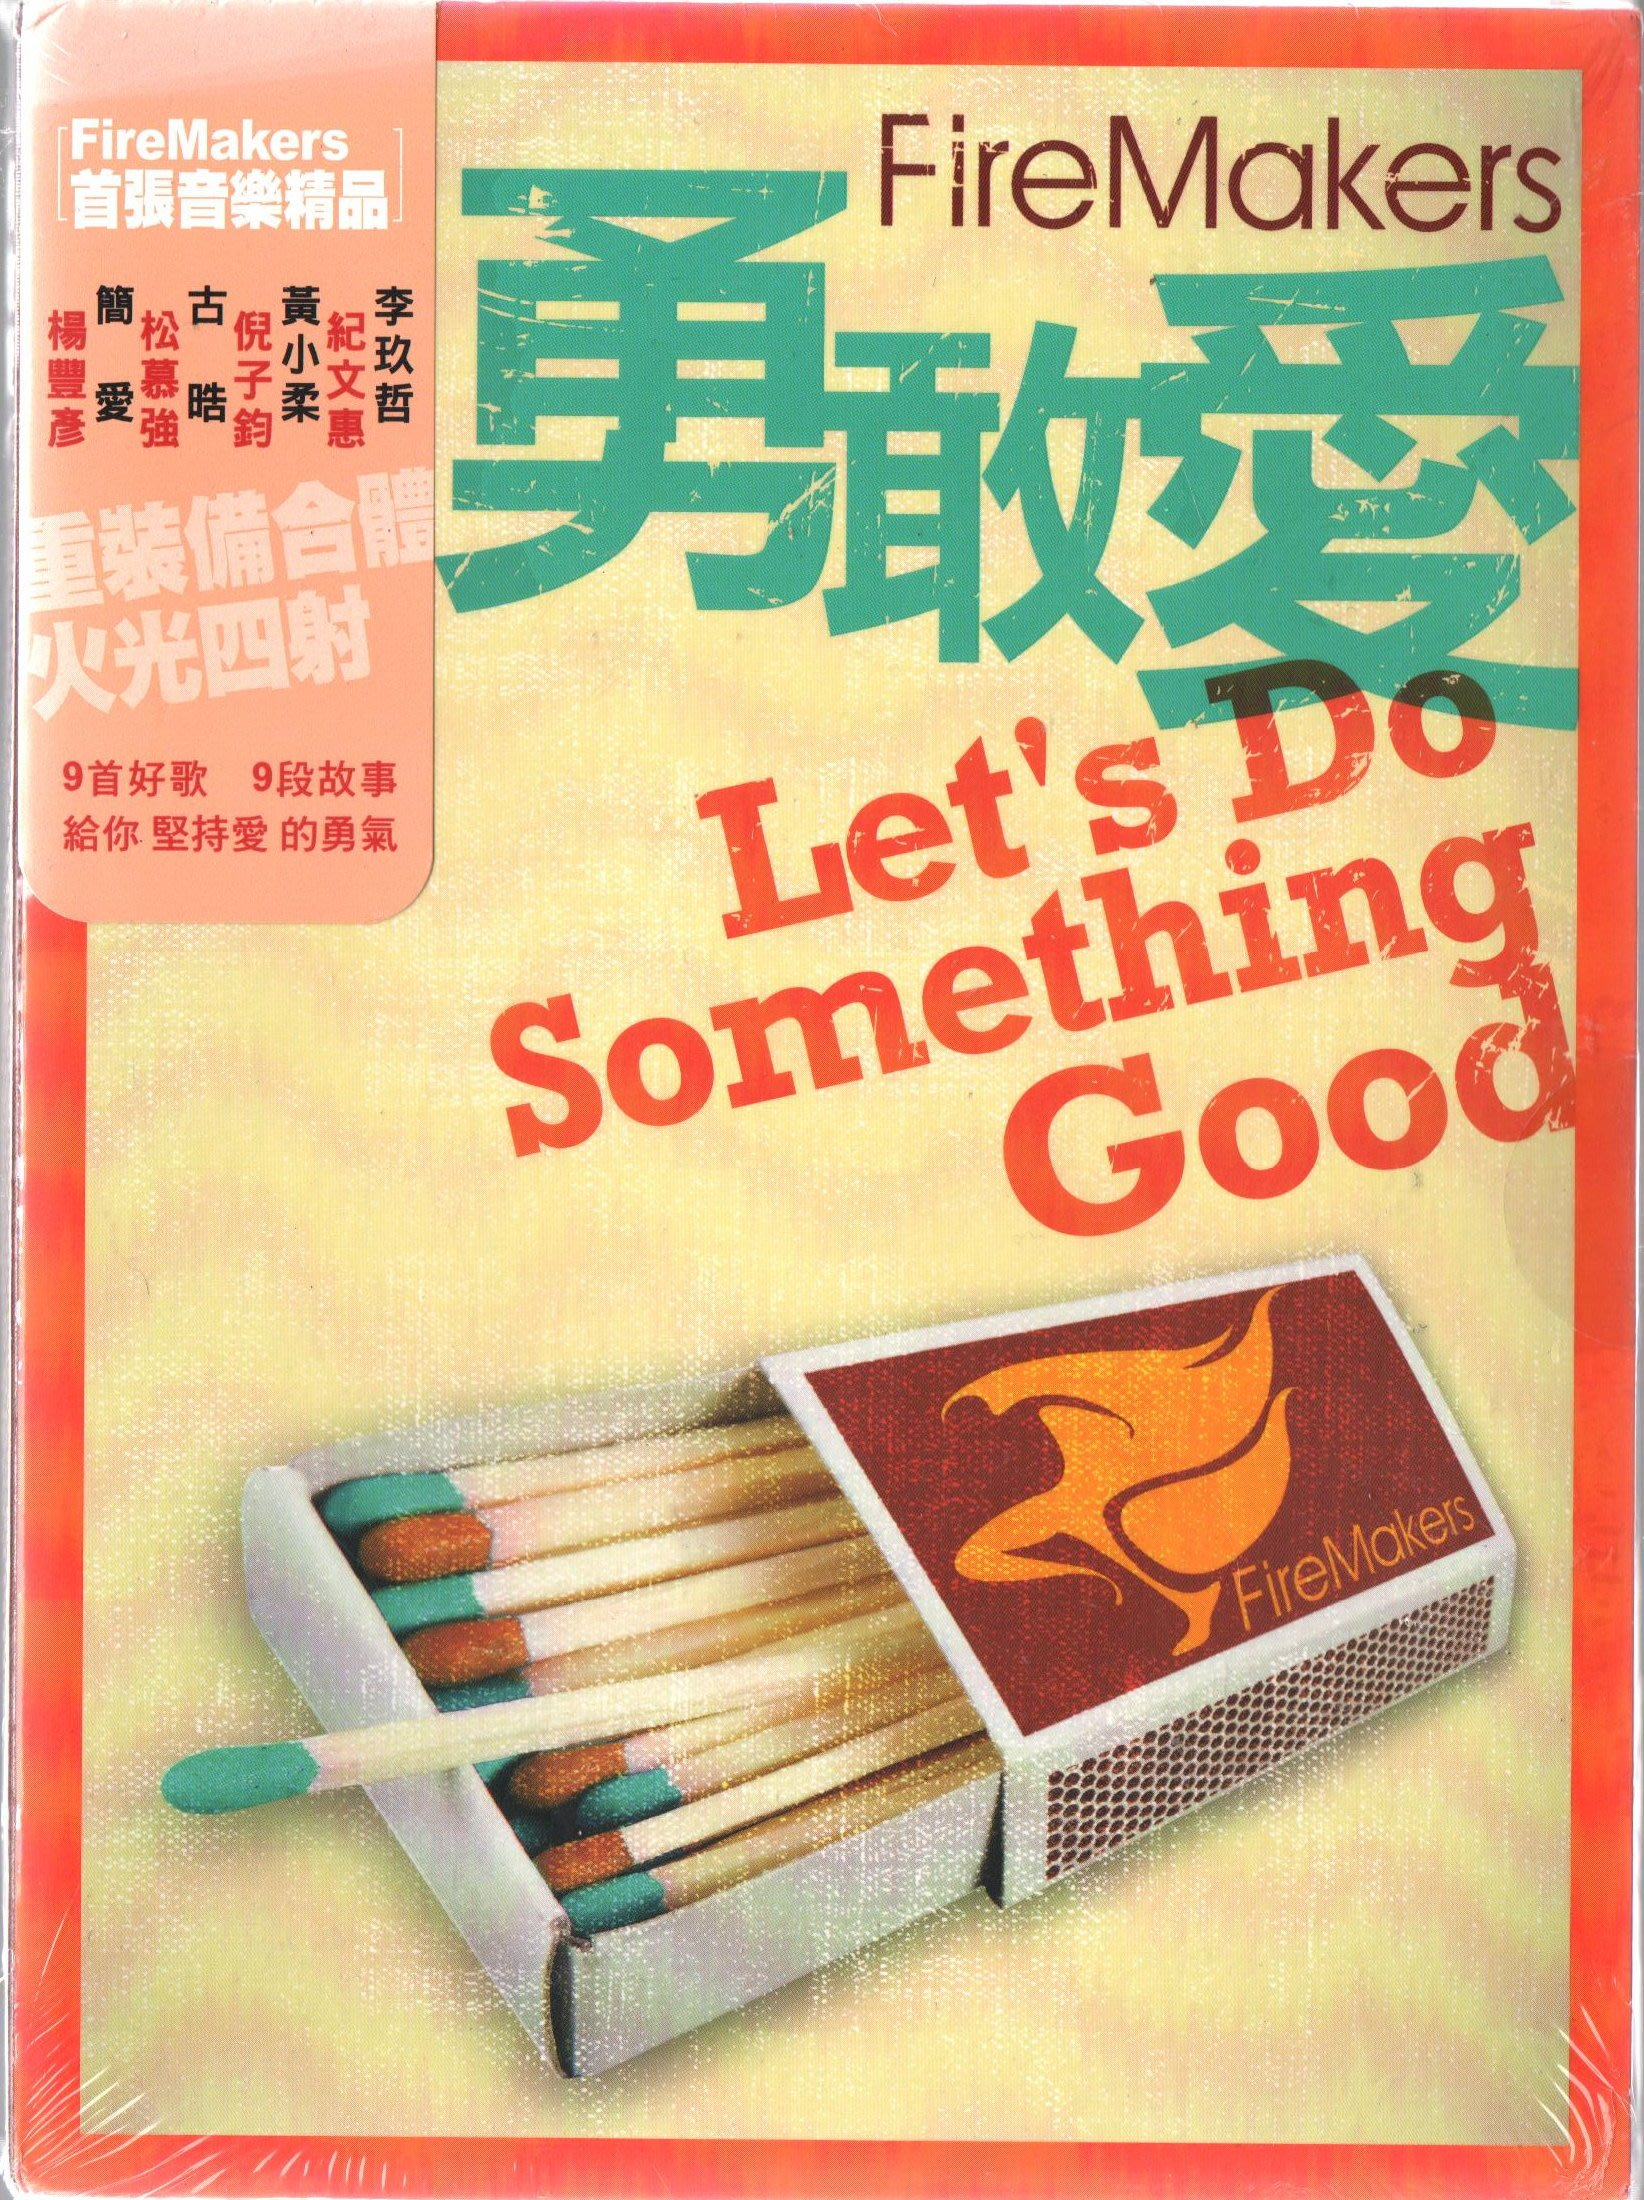 FireMakers 勇敢愛 Lets Do Something Good 全新 再生工場1 03